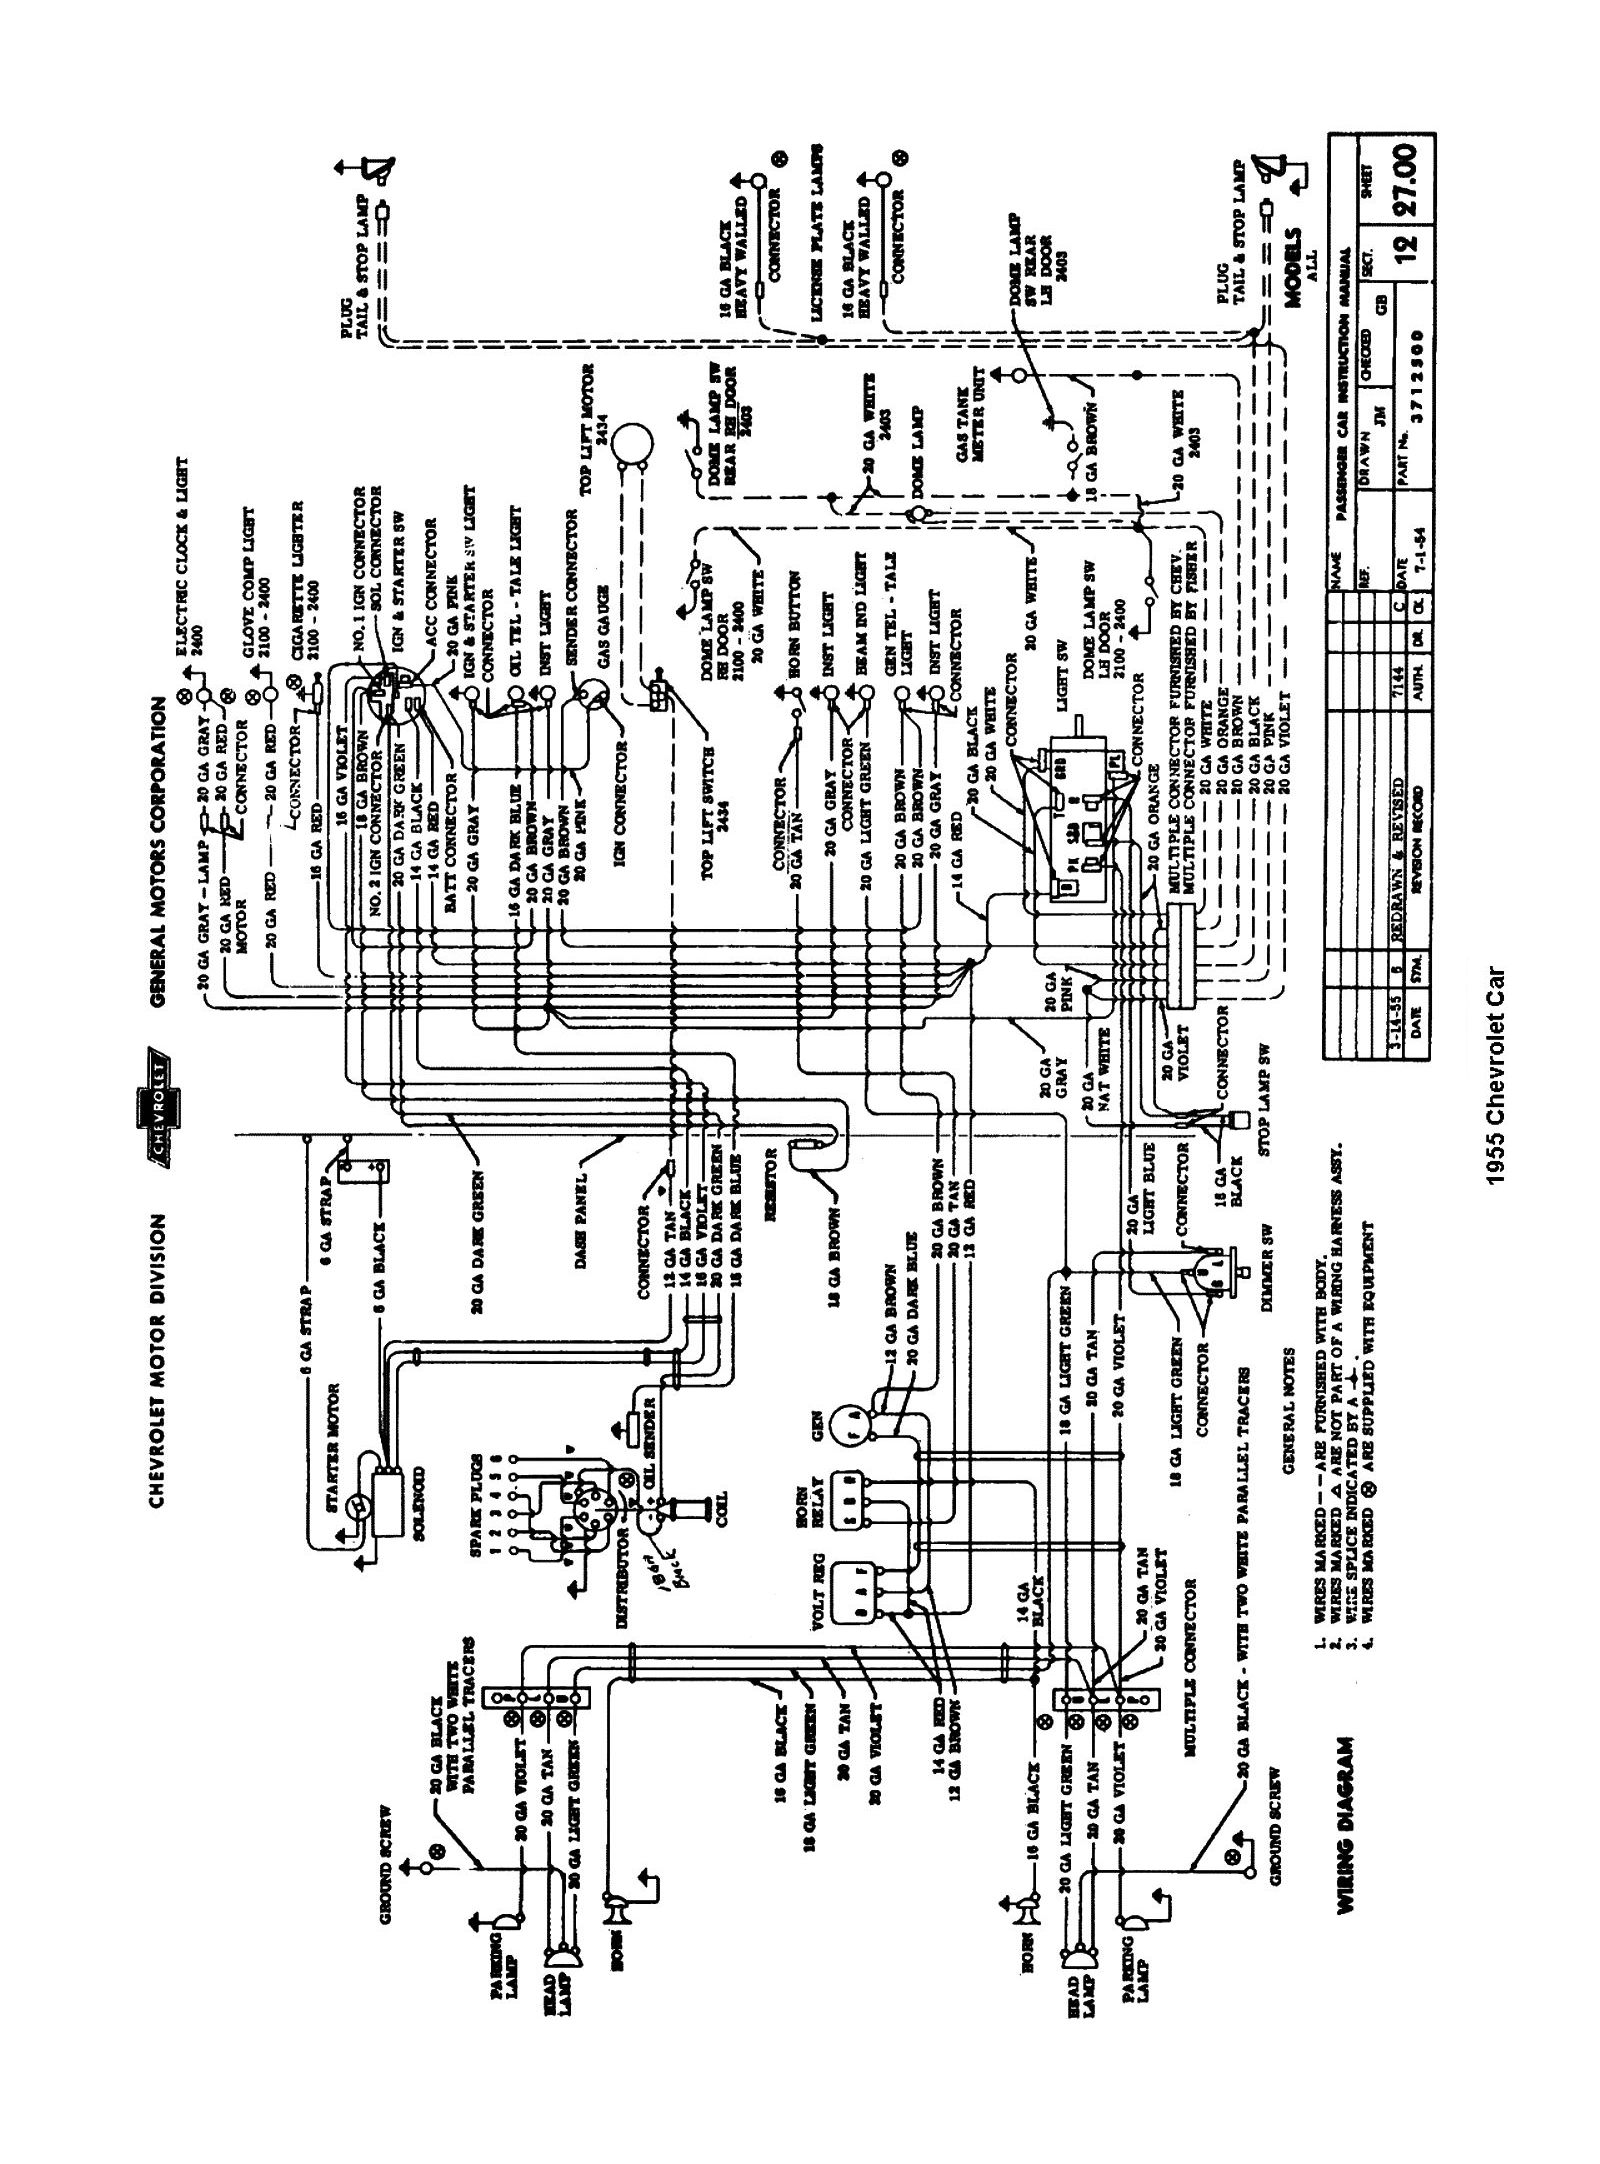 55car1 1955 chevy wiring diagram 1955 pontiac wiring diagram \u2022 free 1955 Chevy Headlight Wiring Diagram at reclaimingppi.co